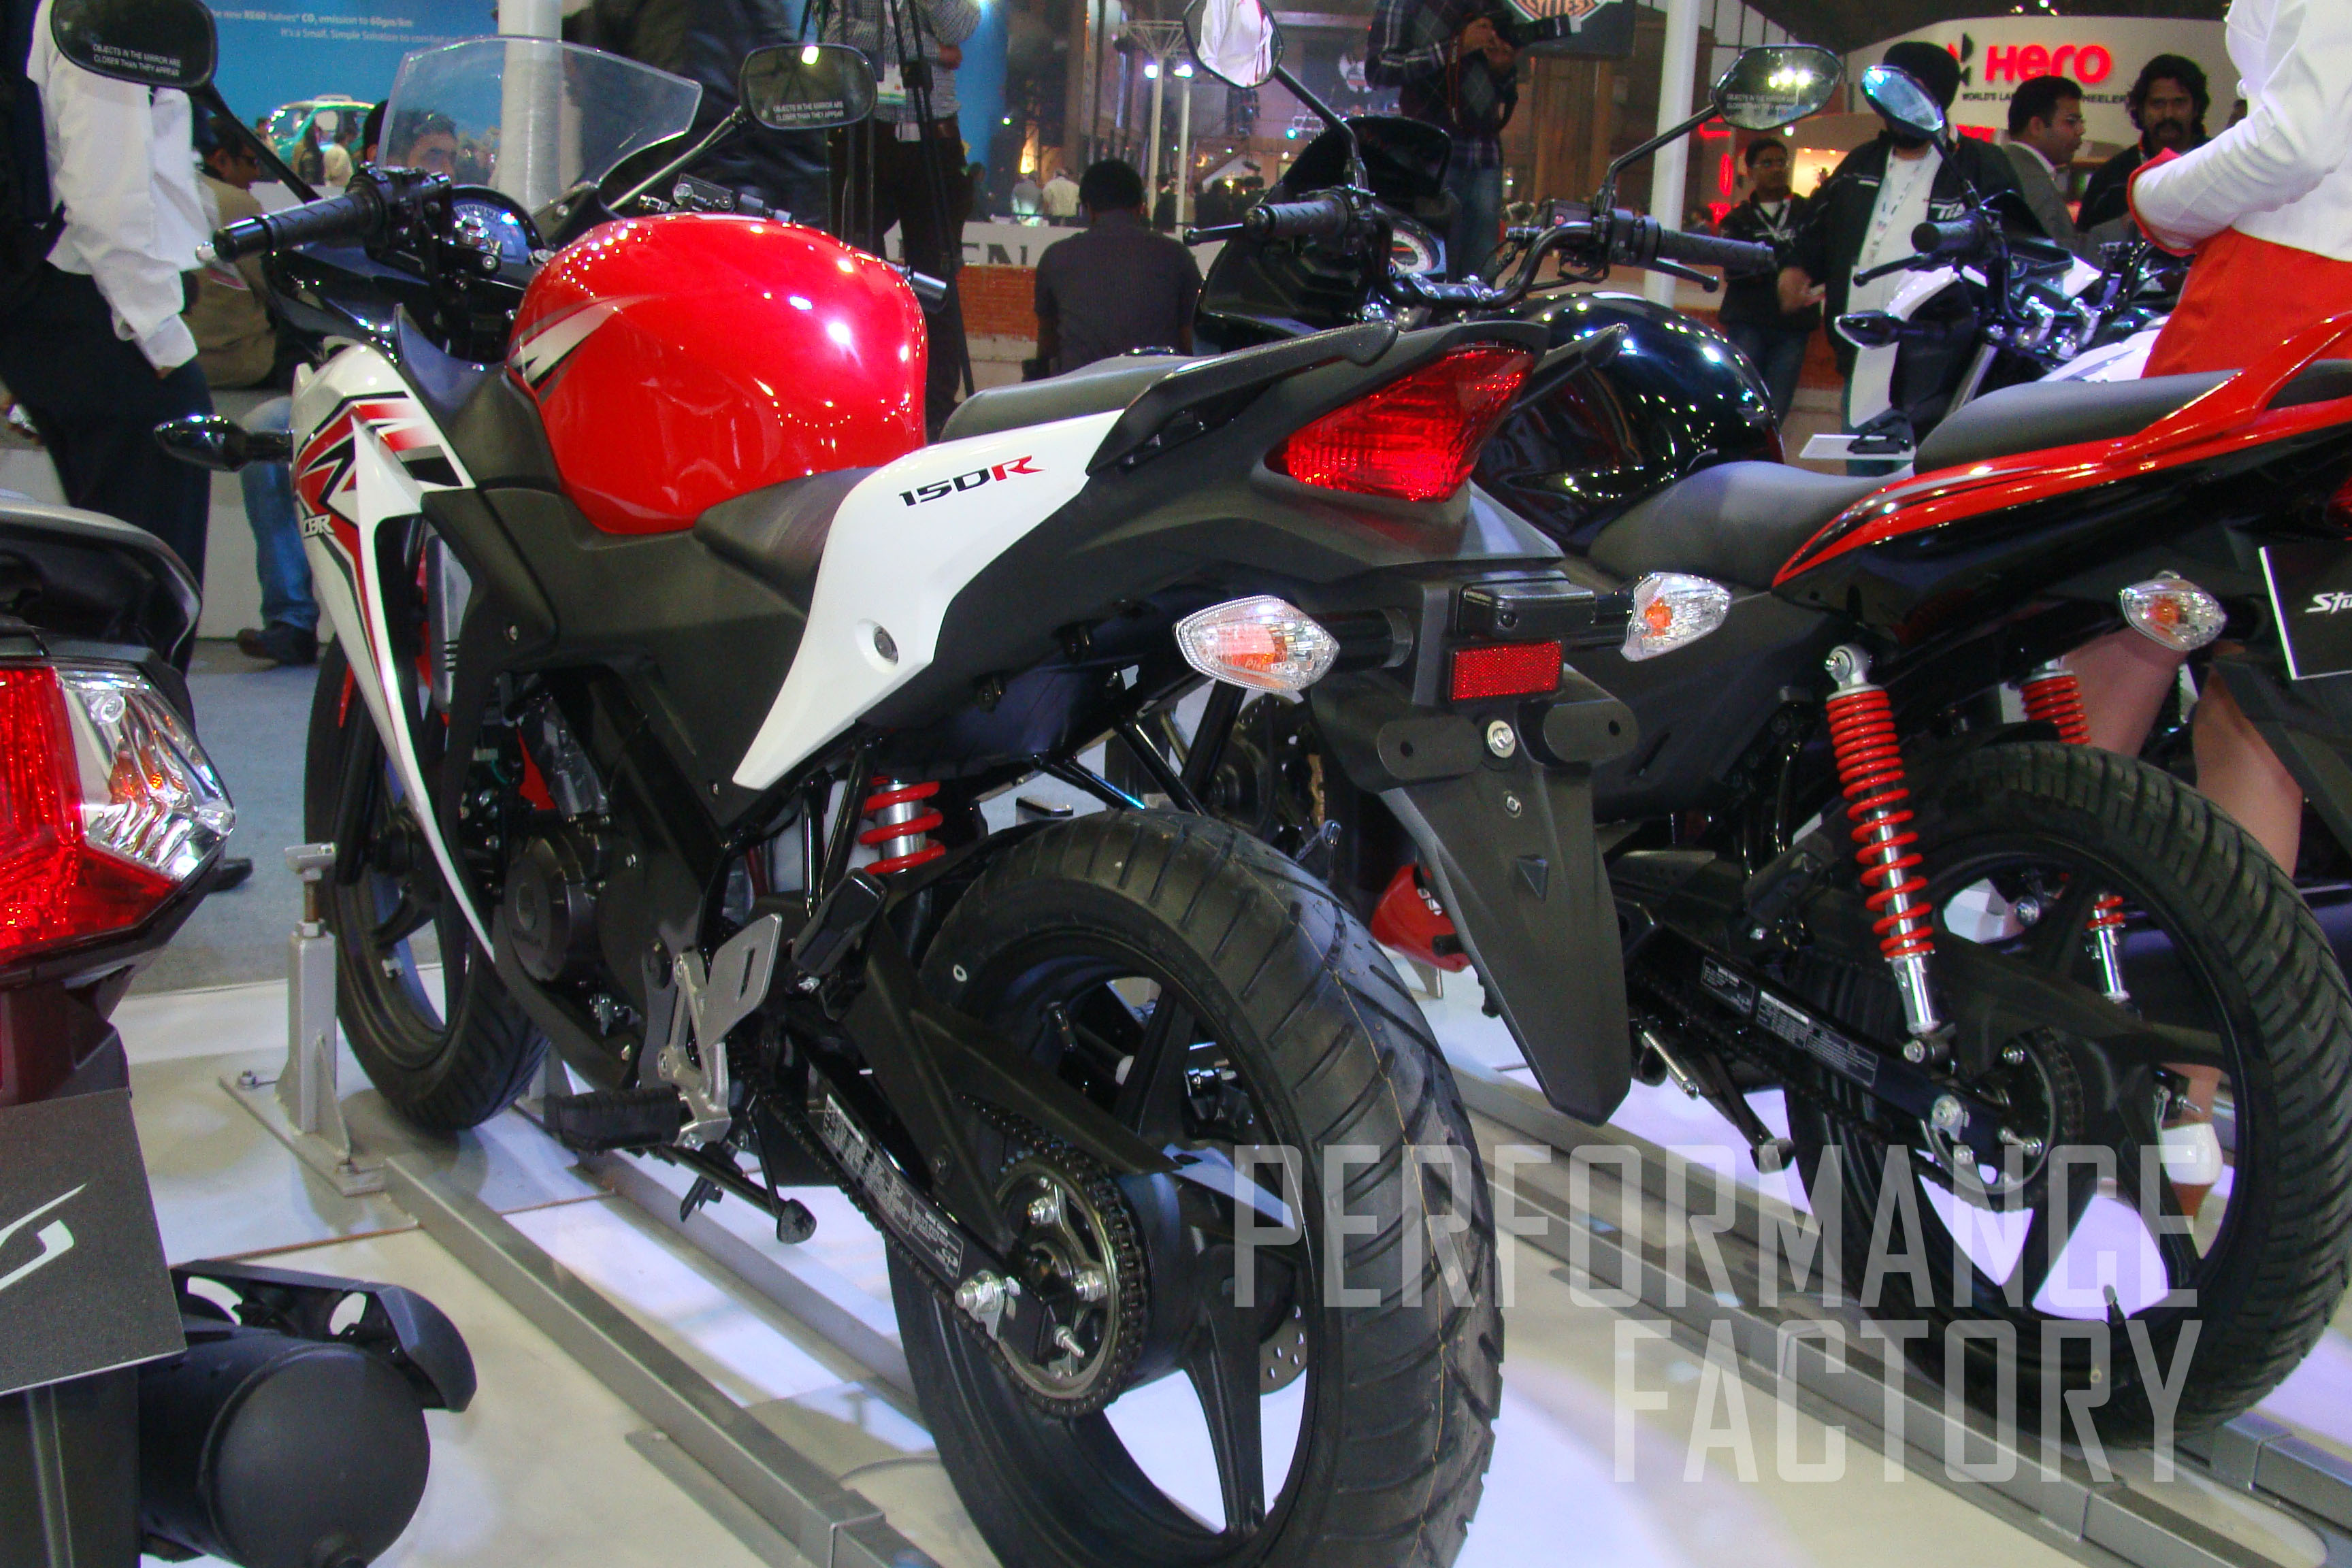 Cbr 150r has light and compact